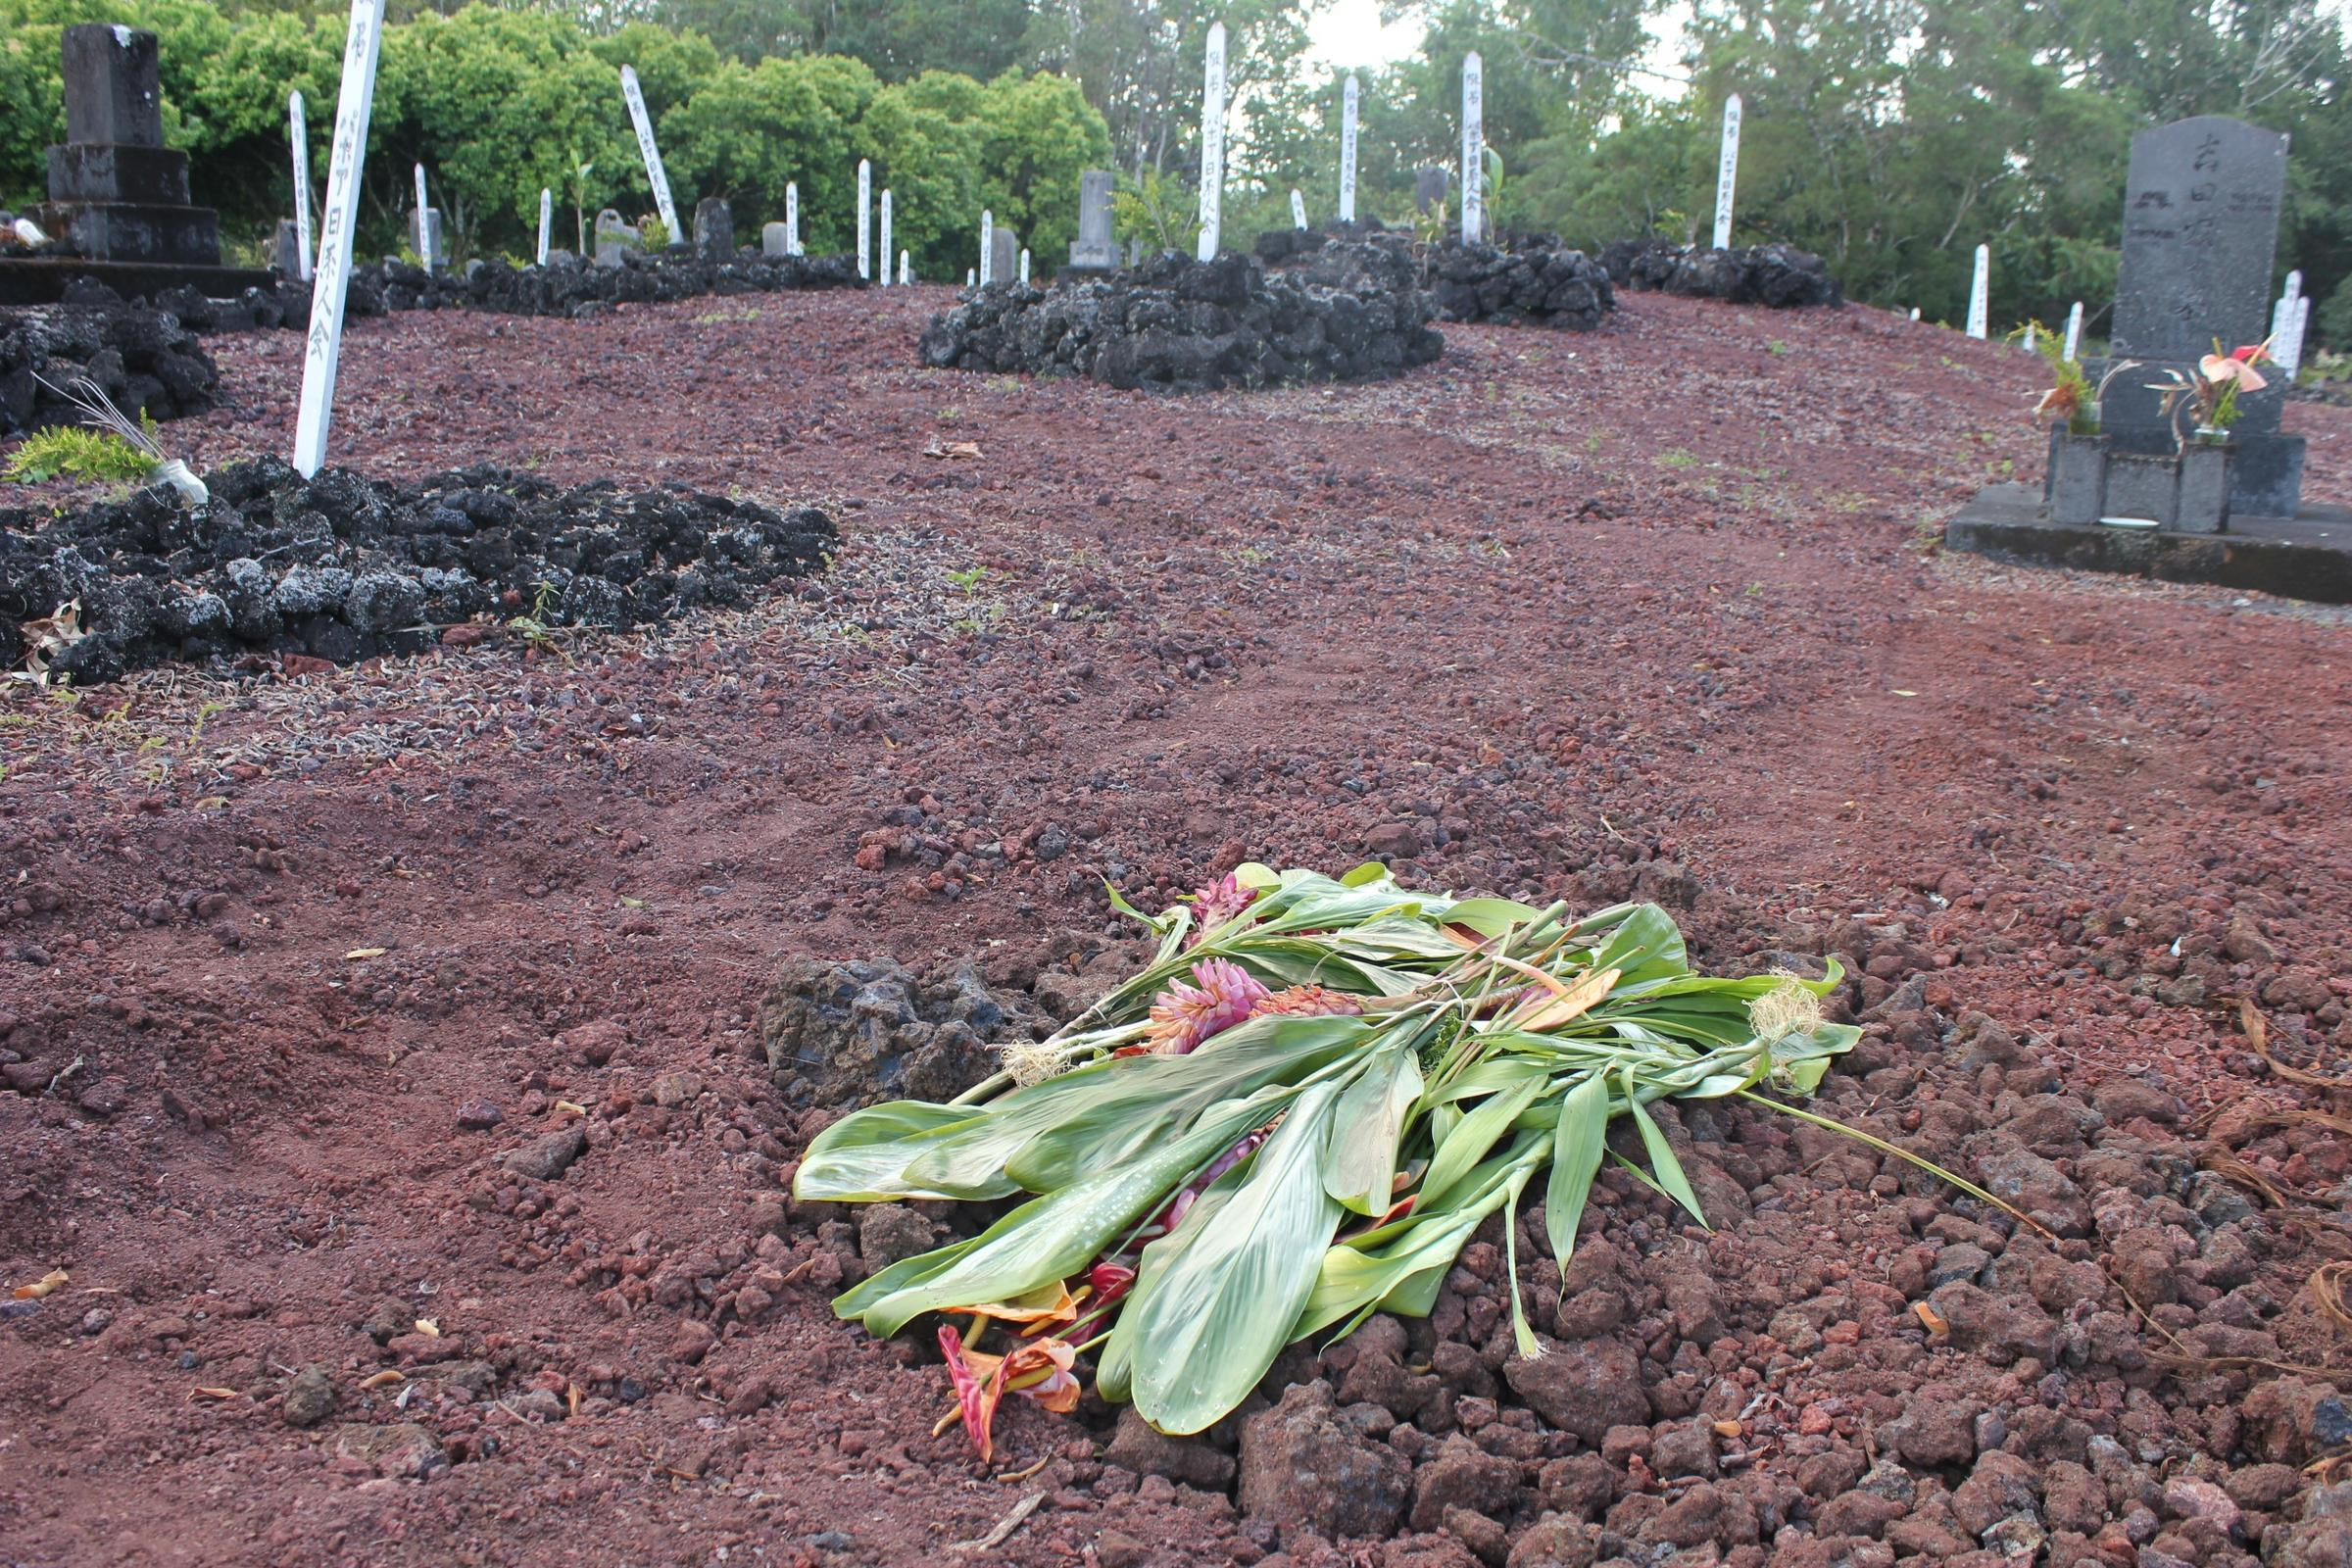 pahoa dating Could rain save hawaiian town from destruction  off a road and a highway through pahoa,  street lined with wood buildings dating to the town's heyday as a.